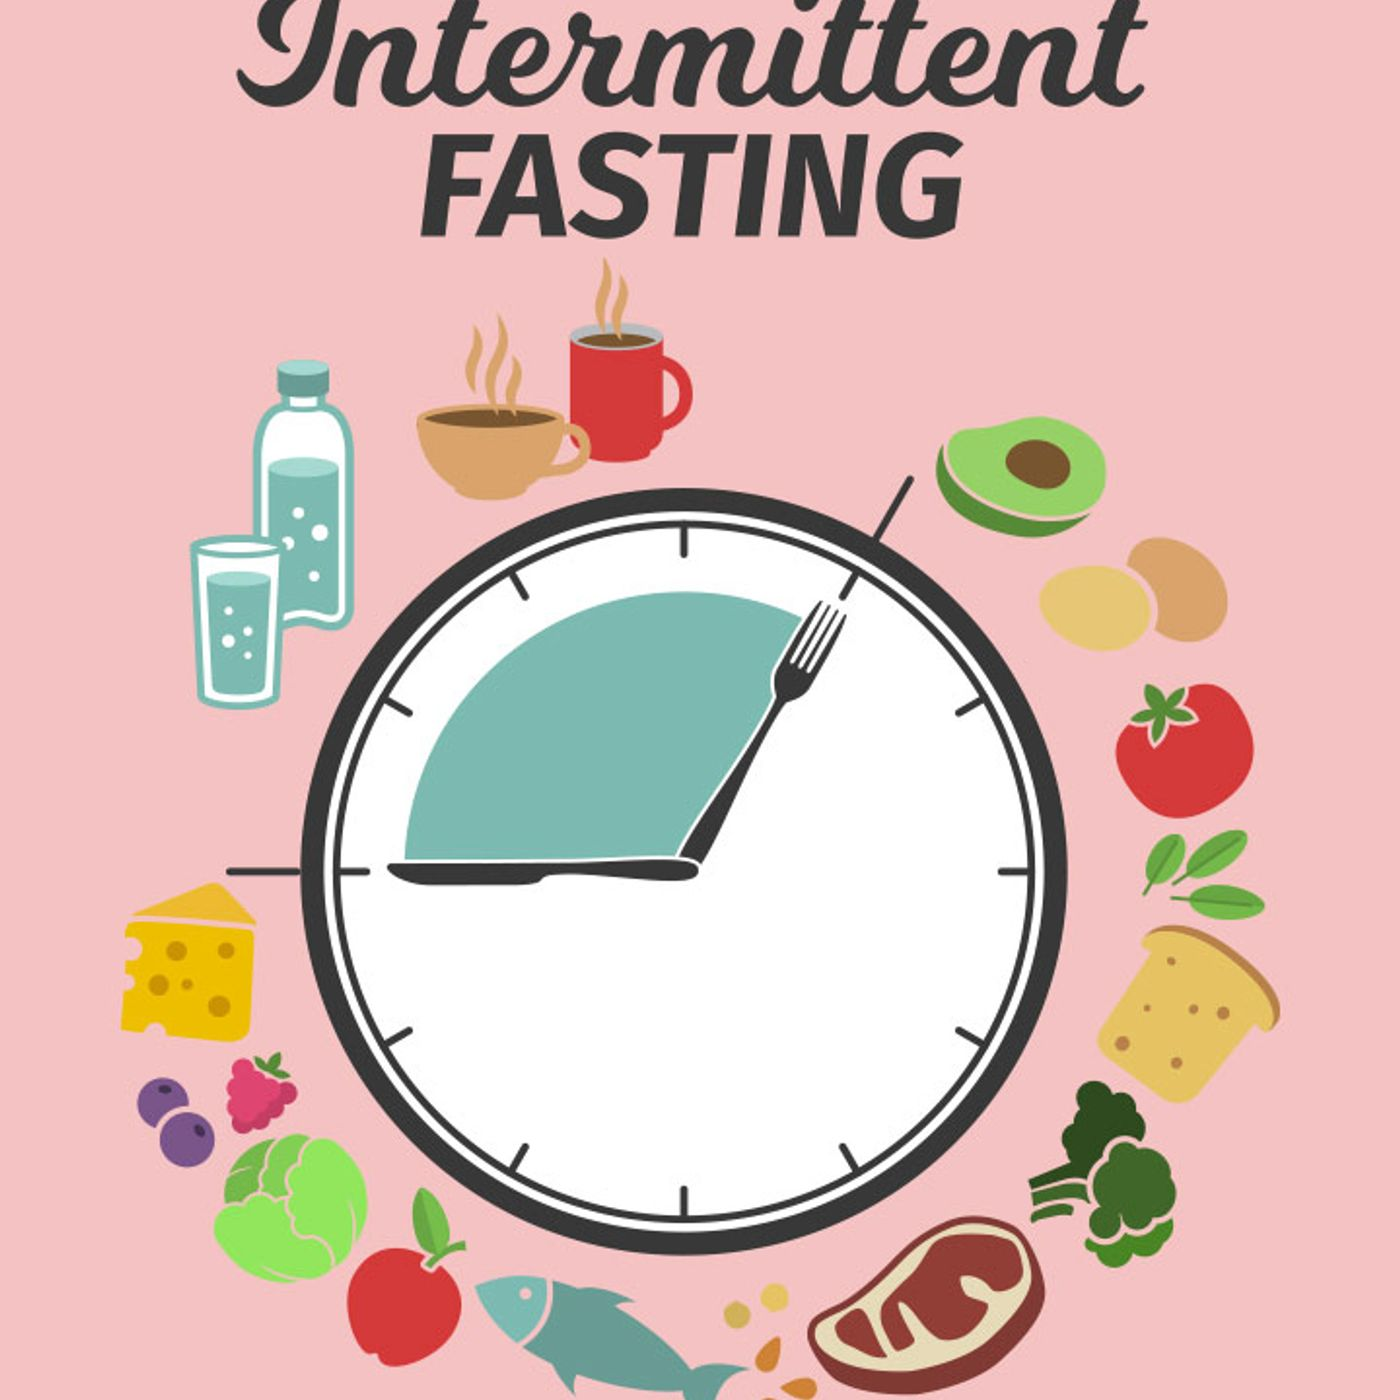 EP 146: Types of Intermittent Fasting and Who Should be doing it, by Karen Malkin